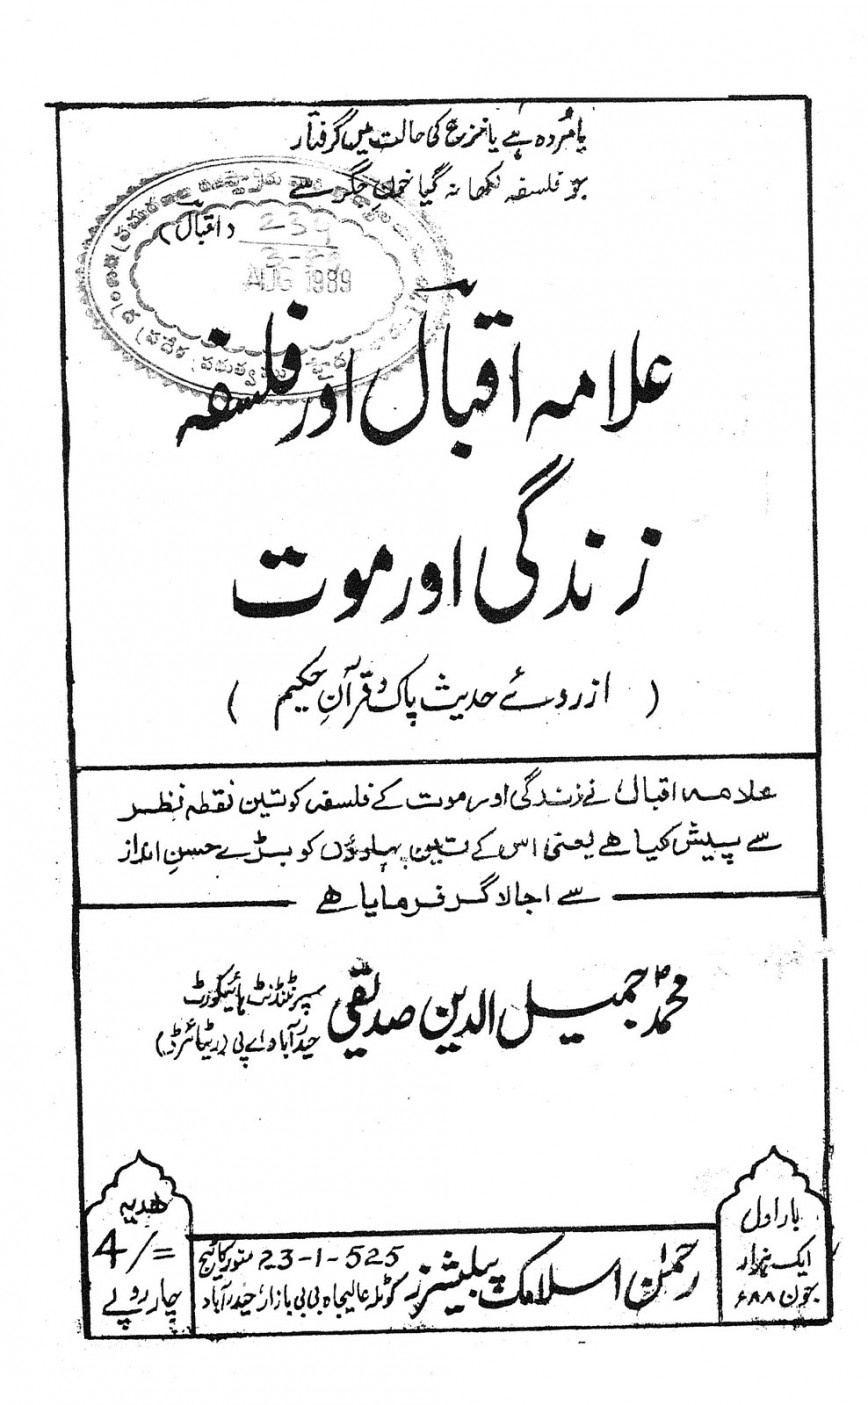 015 Allamaiqbalaurfalsafa Zindagi Aur Maut Urdu Essay Allama Iqbal Dreaded On In For Class 10 With Poetry Ka Shaheen Headings And 868